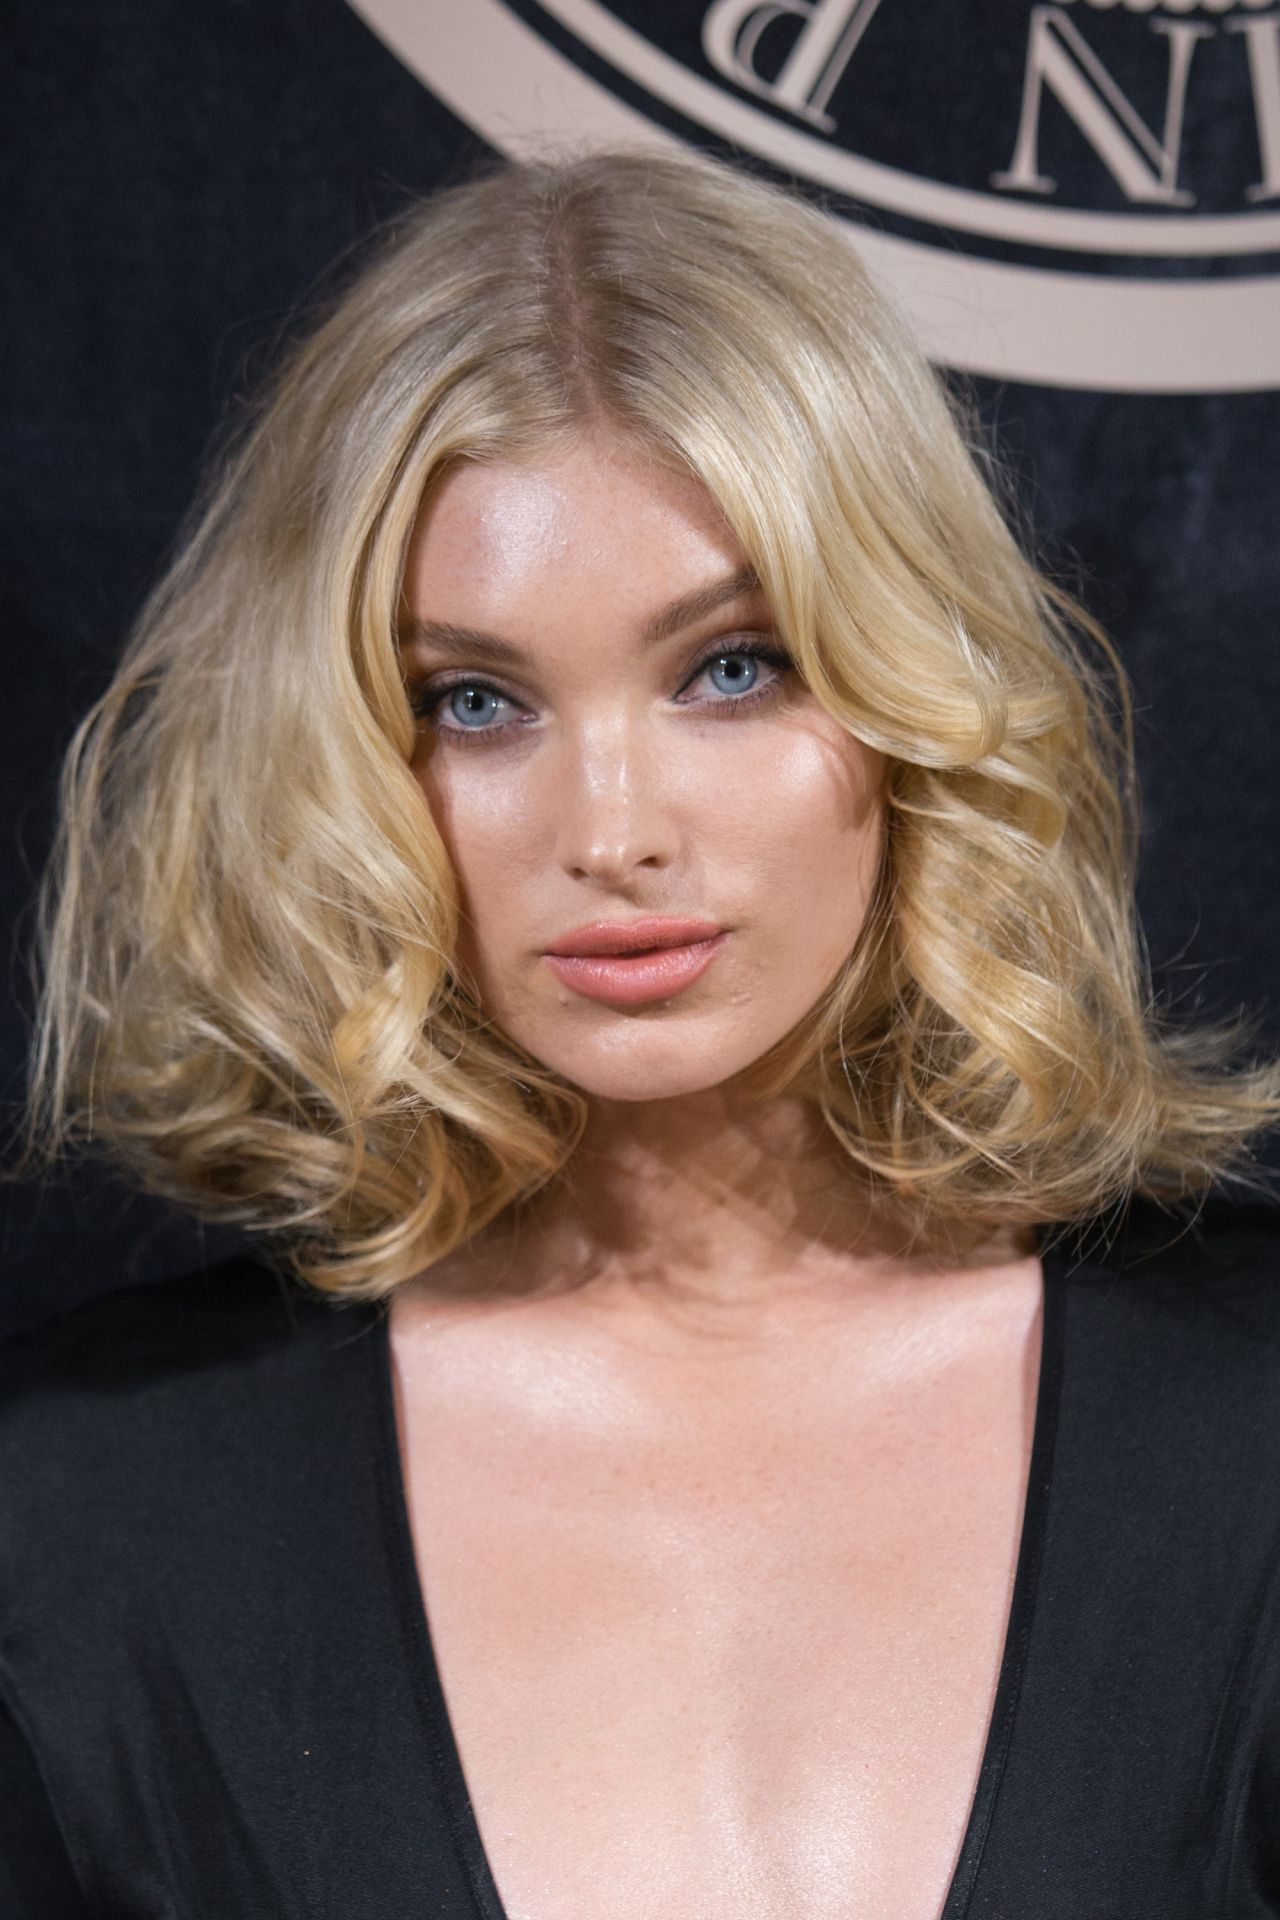 Elsa Hosk L Oreal X Balmain Party In Paris 09 28 2017